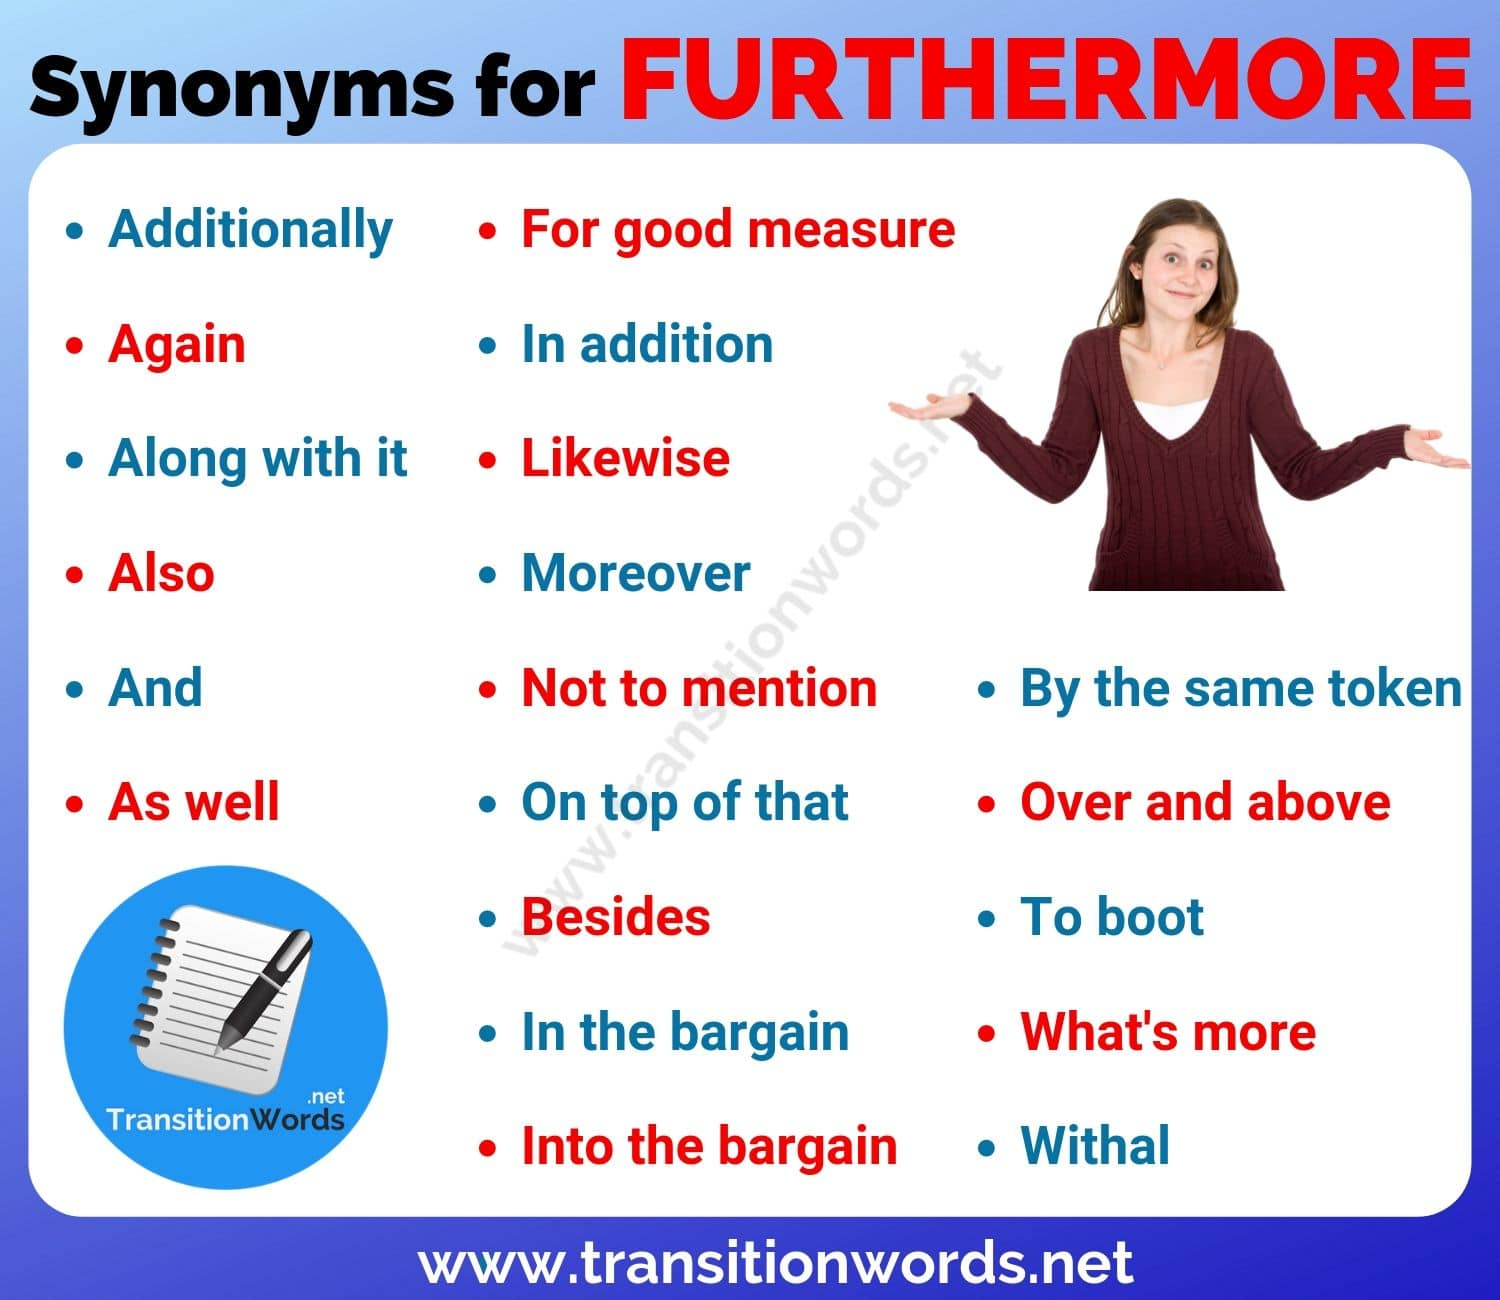 FURTHERMORE Synonym: List of 20 Powerful Synonyms for Furthermore